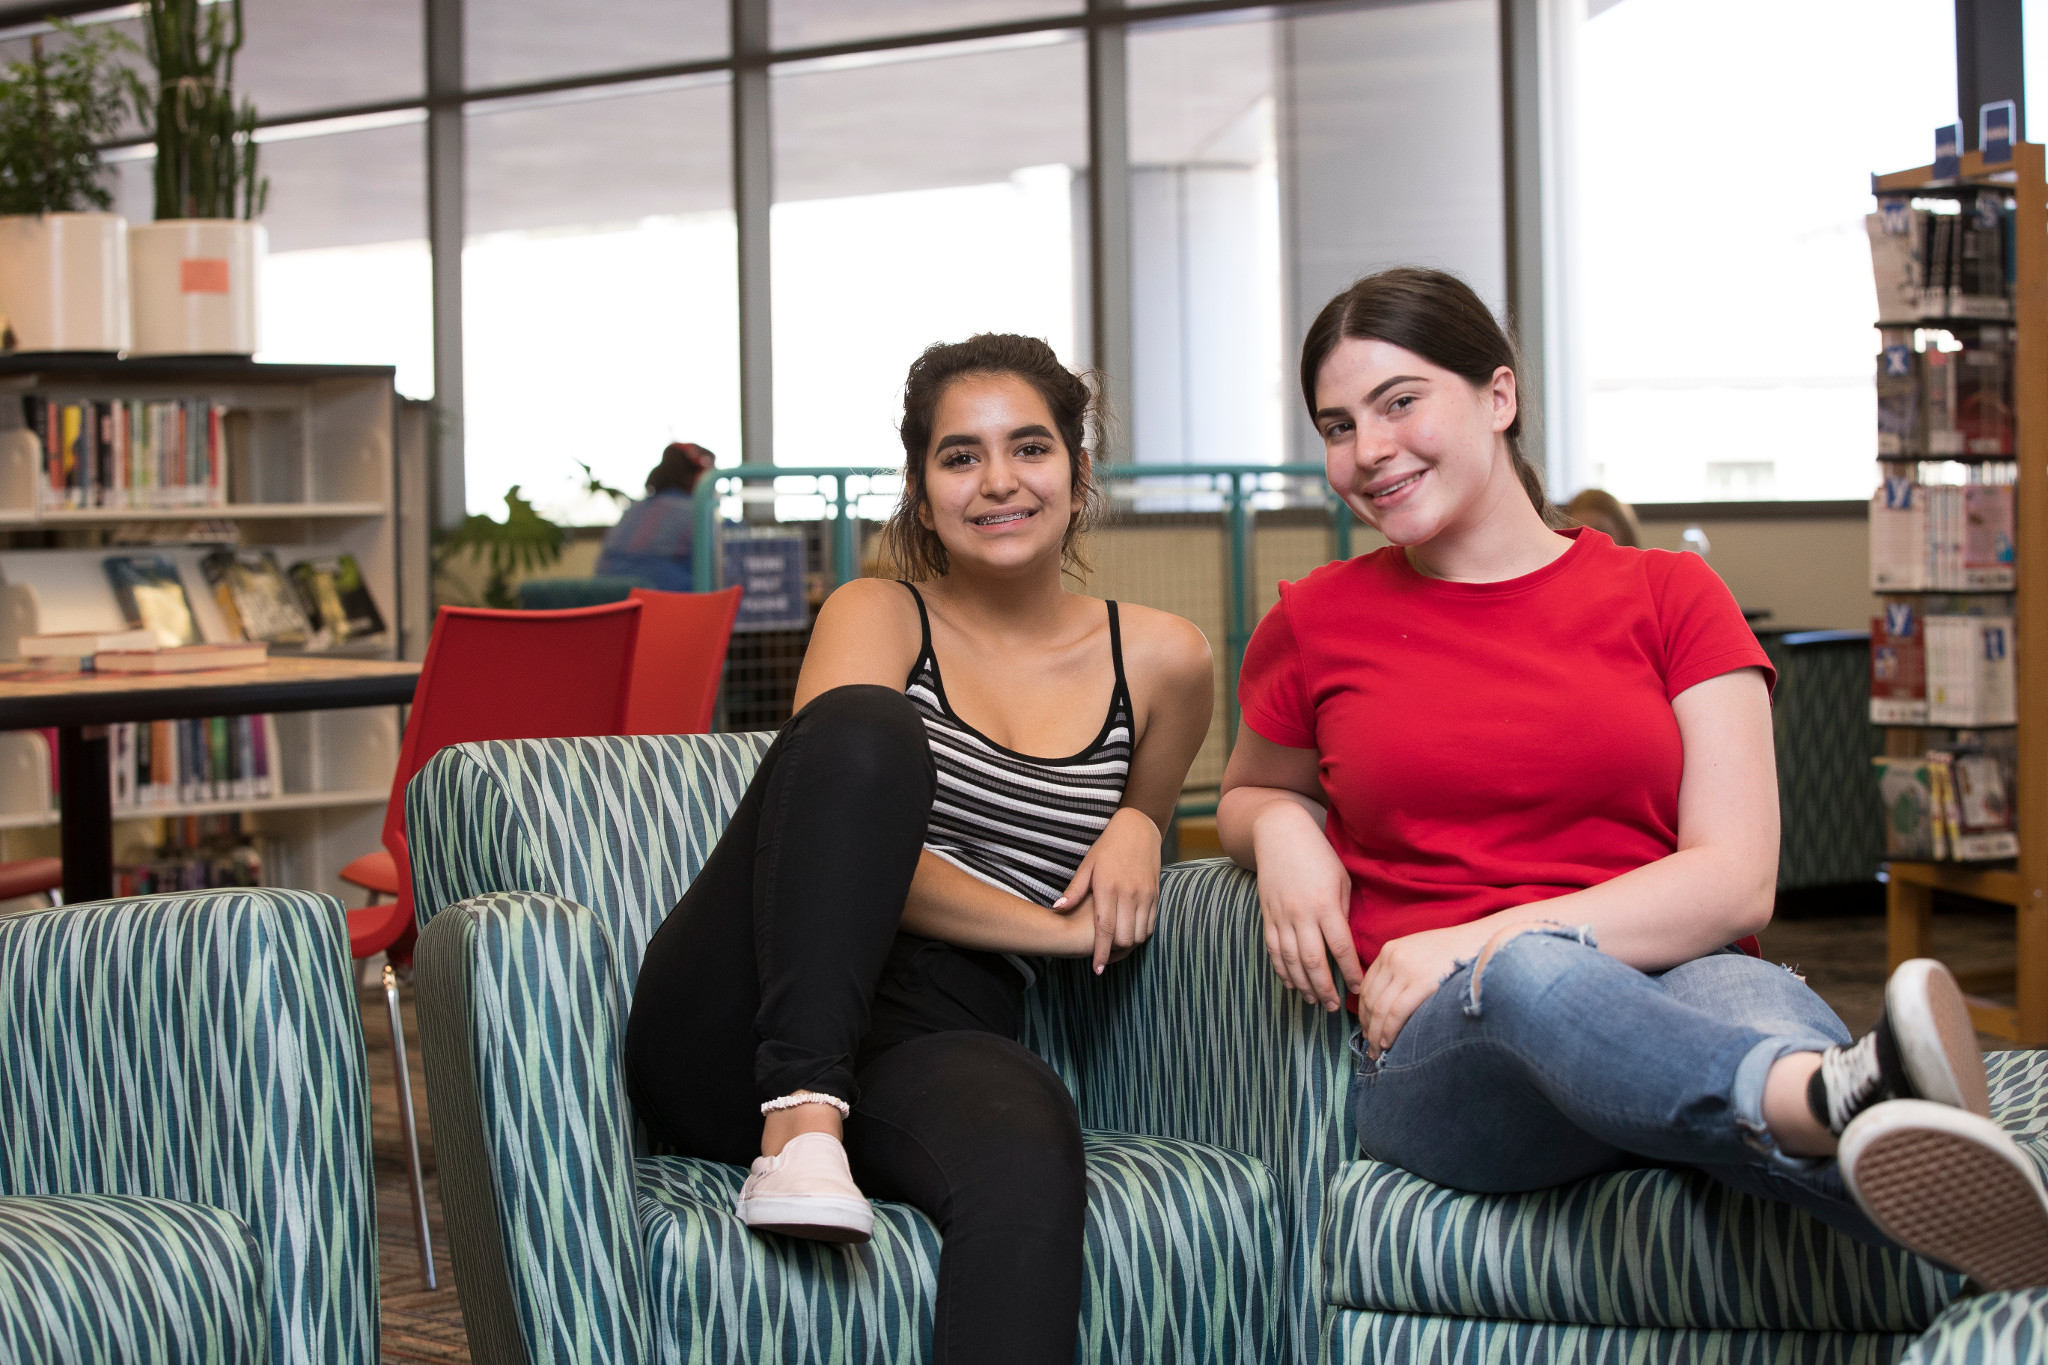 Summer Youth Workers Yasmin and Mina